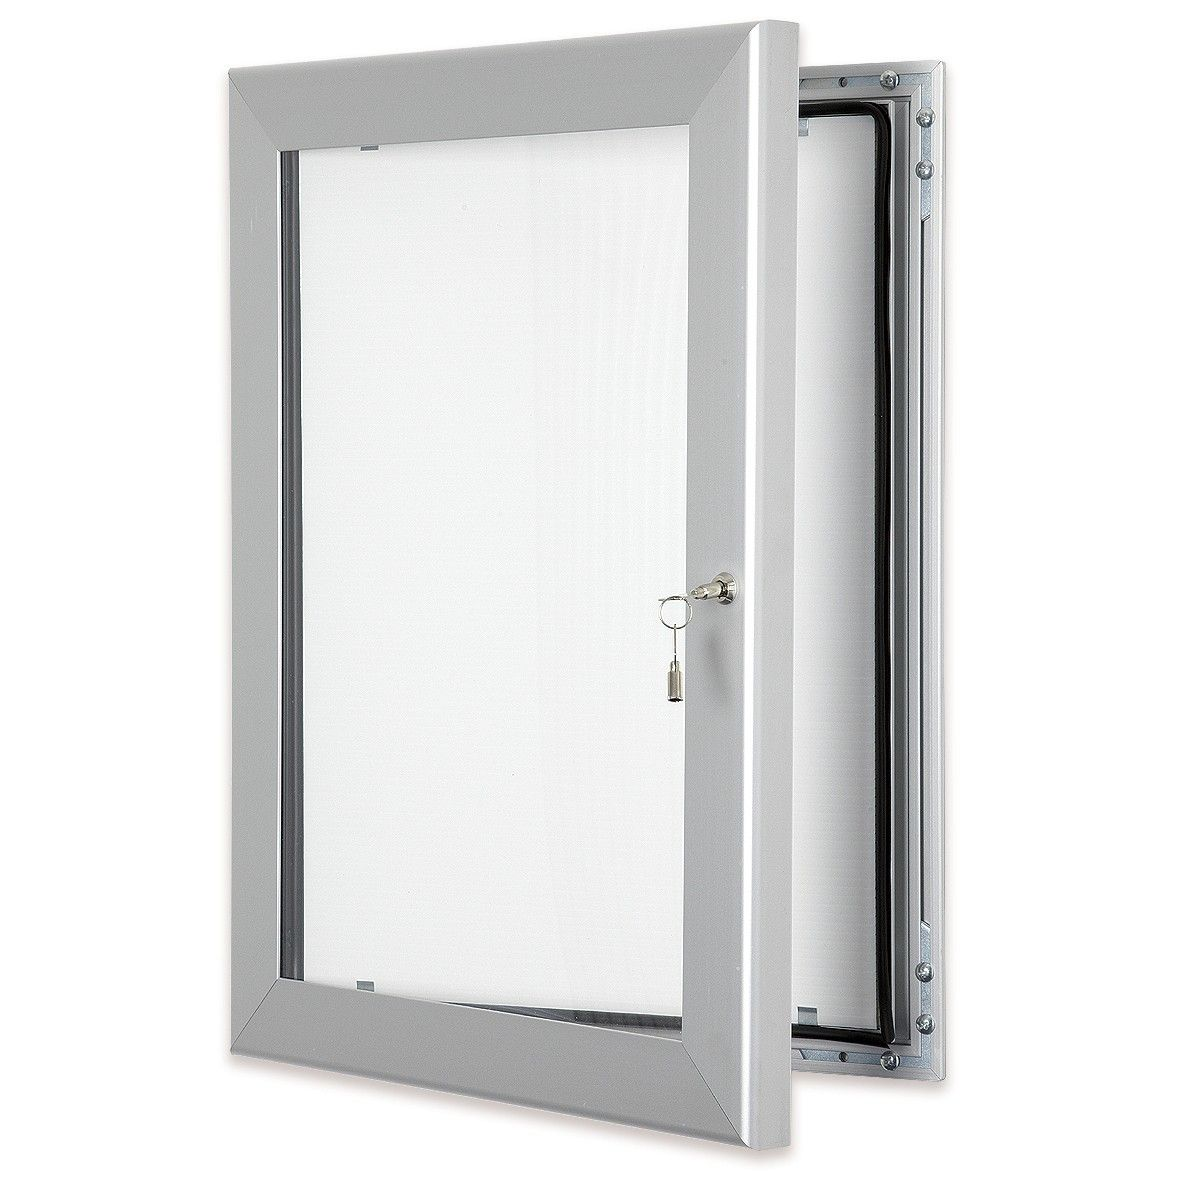 Silver outdoor lockable poster cases lockable waterproof and vandal resistant lockable frames for Exterior display case